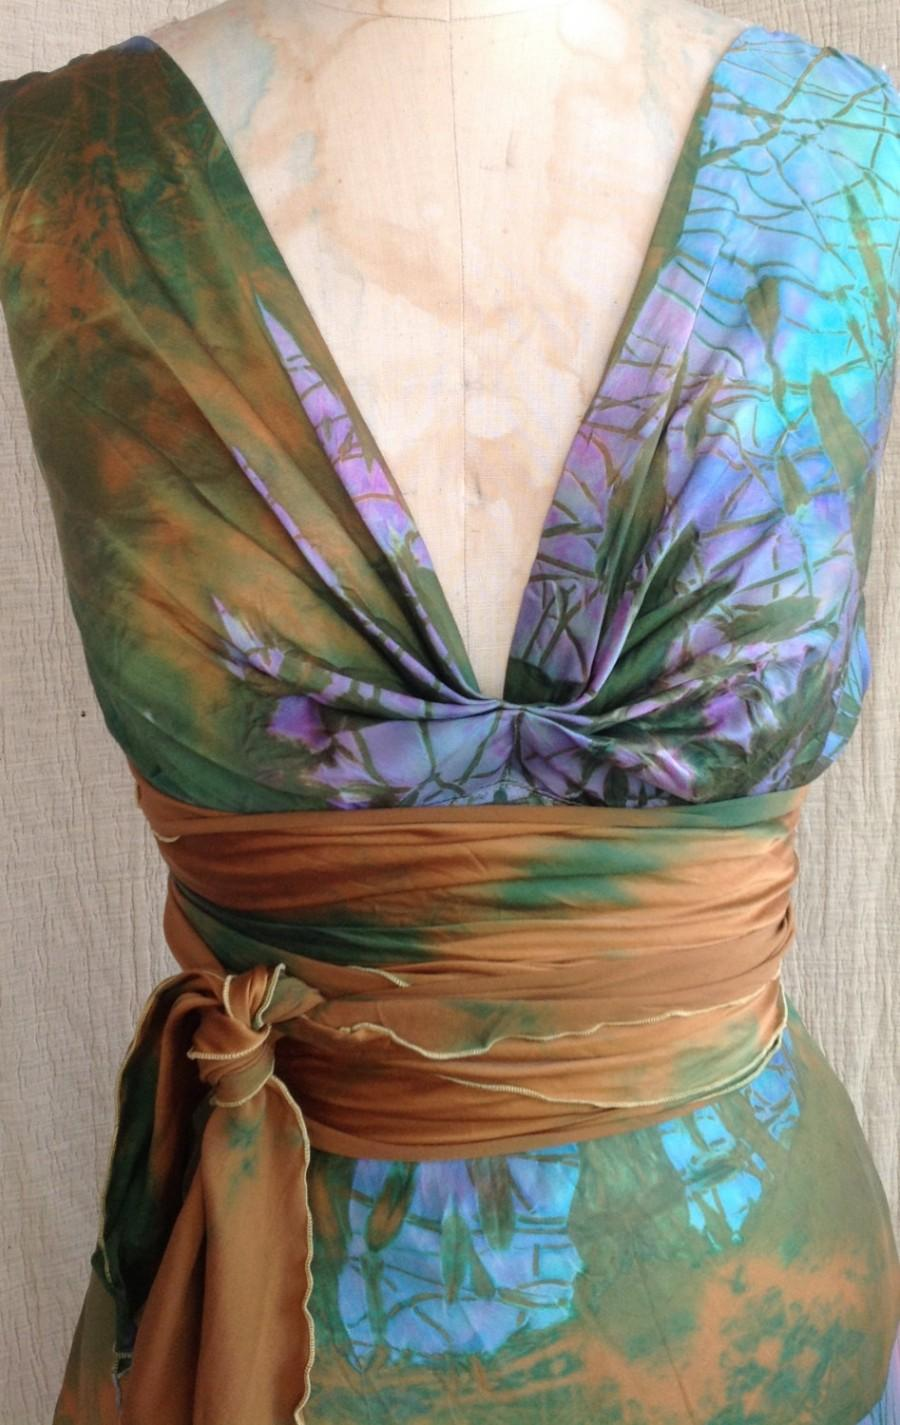 Rousing Bride Dressboho Beach Bridal Tie Dye Bridesmaids Island Dress Batik Gowns G Green Turquoise Henry Silk Wedding Dress Mor Bride G Green Turquoise Henry Silk Wedding Dress Mor wedding dress Tie Dye Wedding Dress